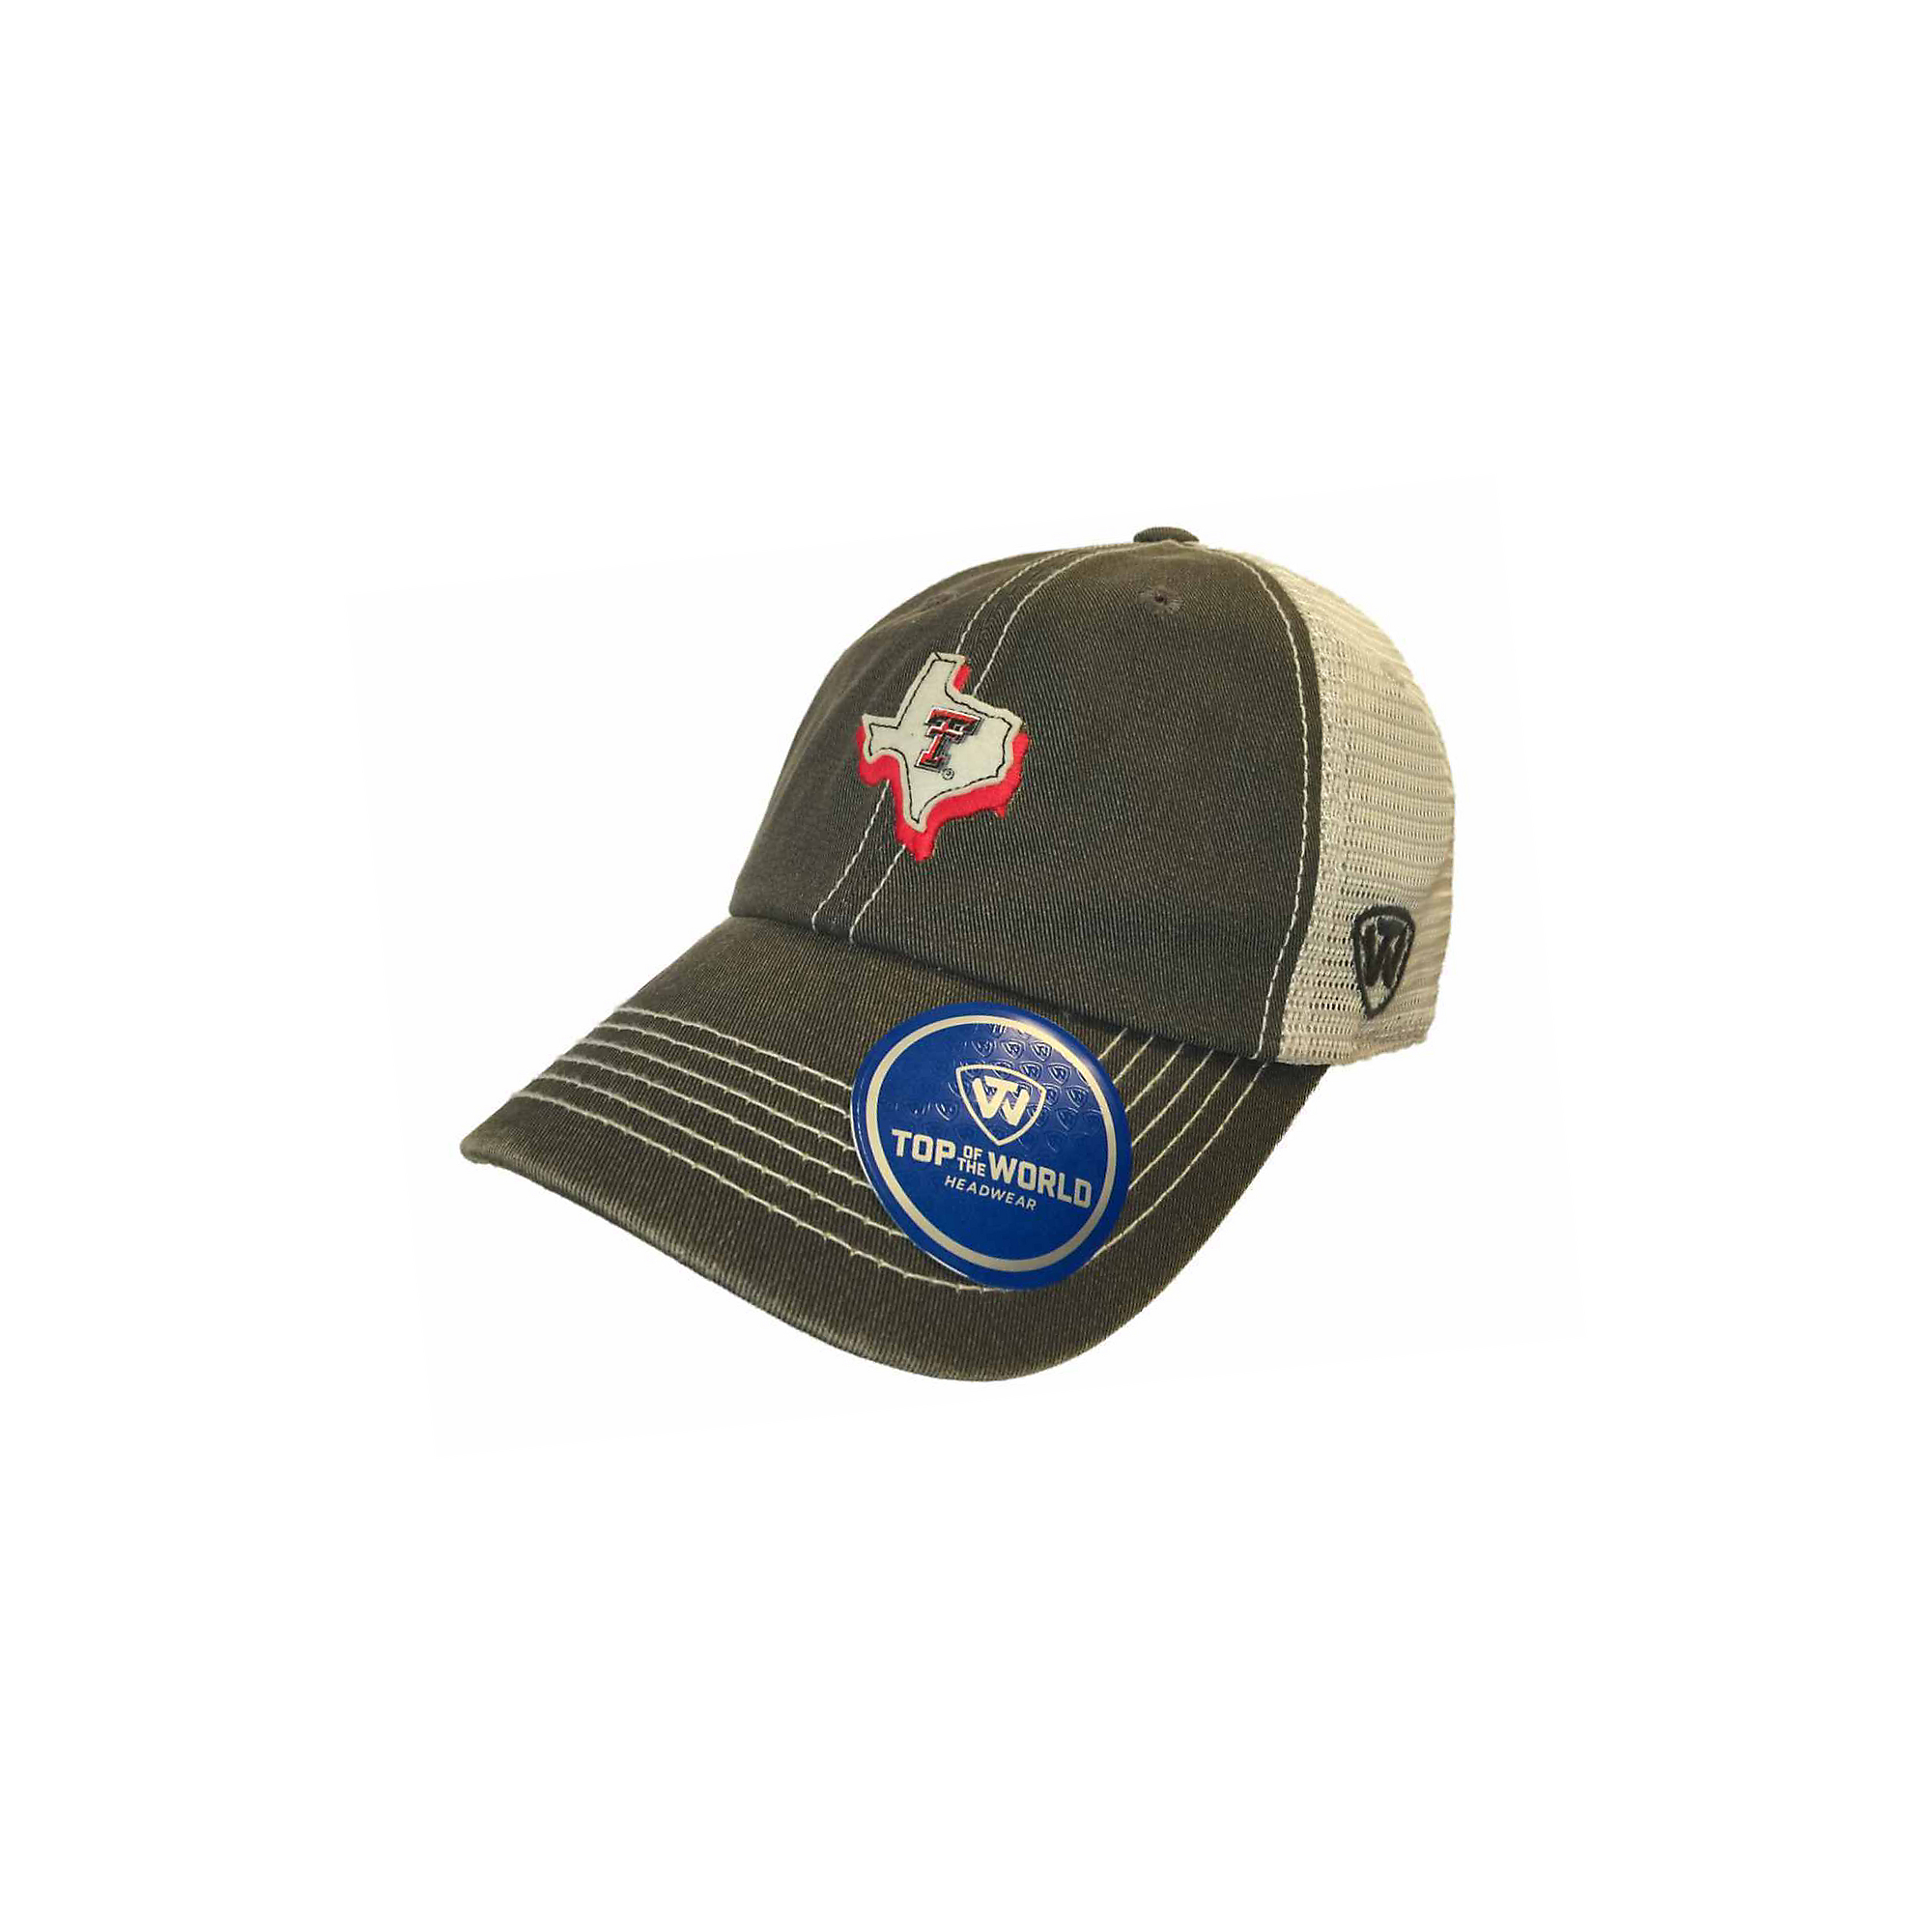 Texas Tech Red Raiders Top of the World United Hat   Fans United